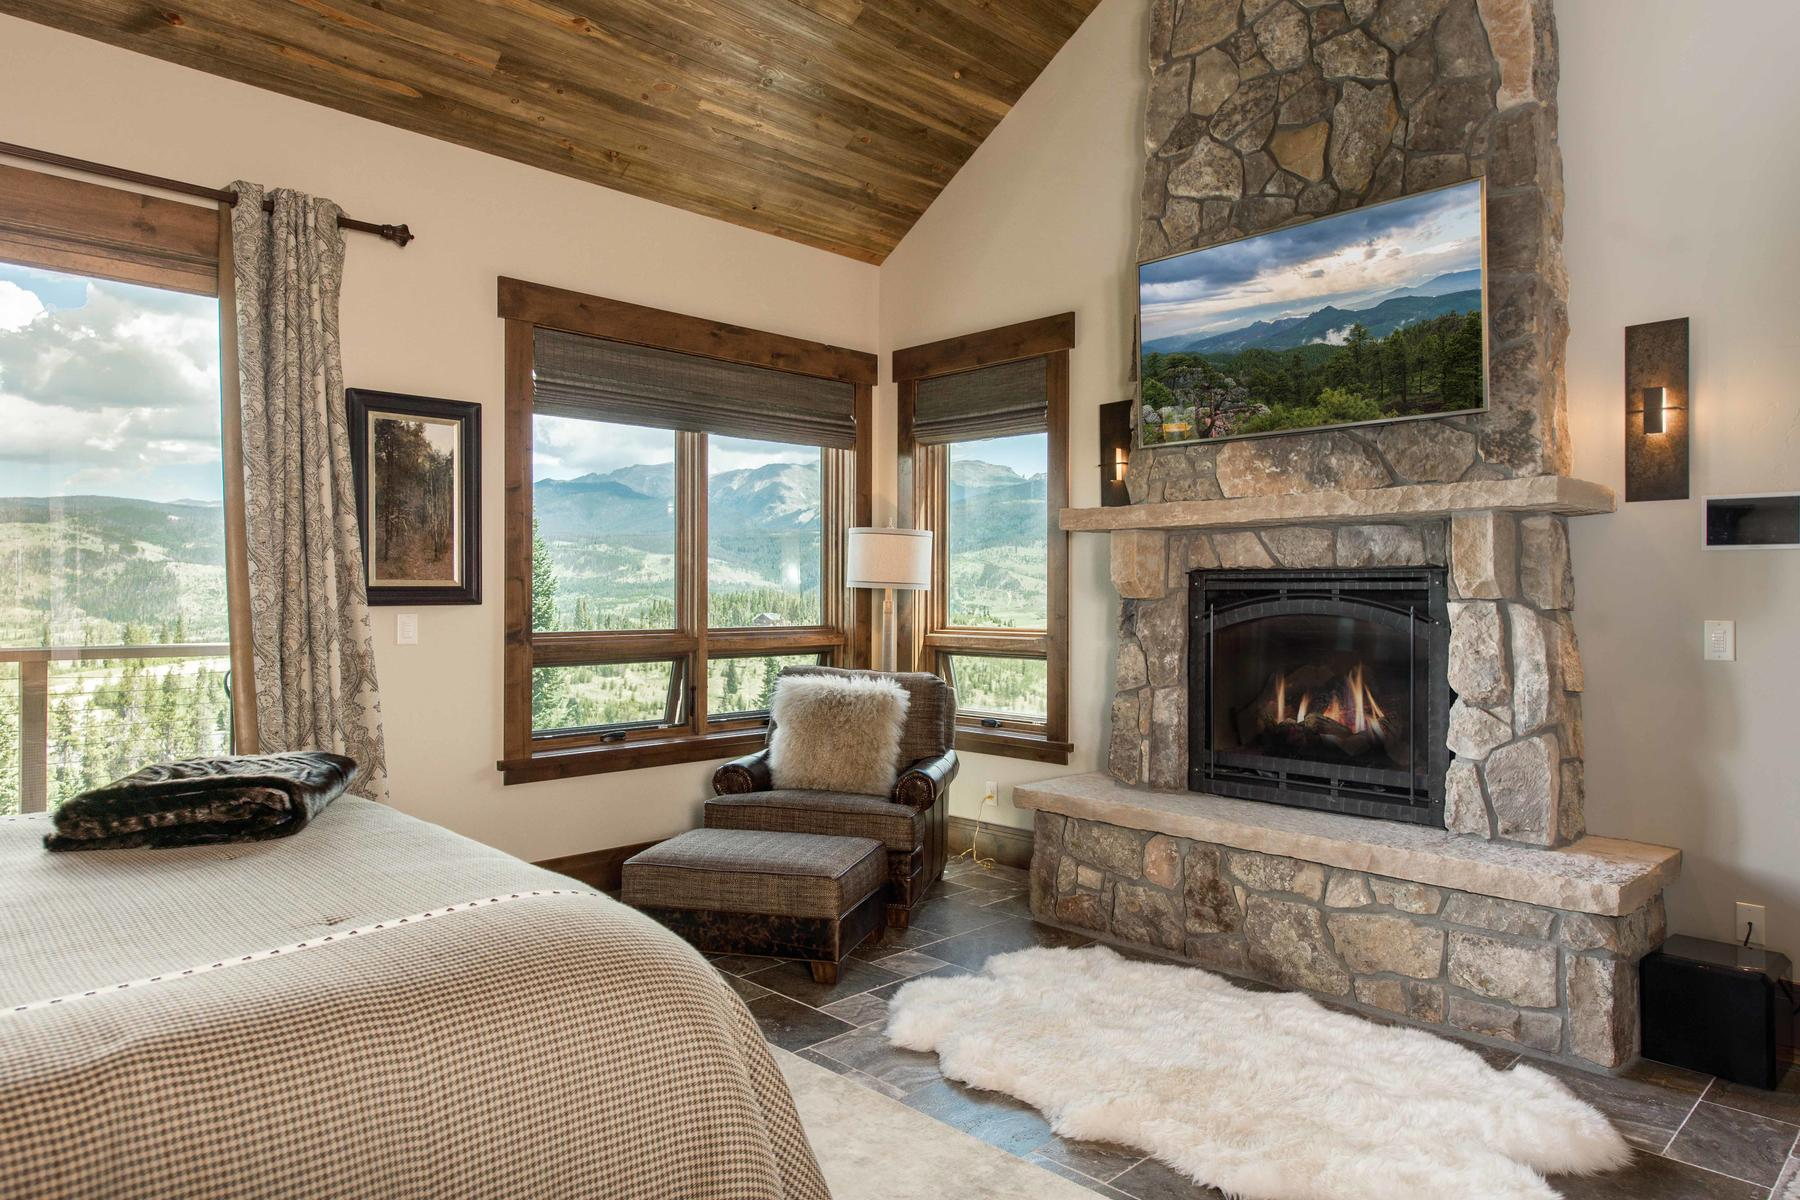 Additional photo for property listing at Enjoy the mountain lifestyle with this extraordinary custom home on 3.6 acres! 181 Bull Bugle Bend Fraser, Colorado 80442 United States